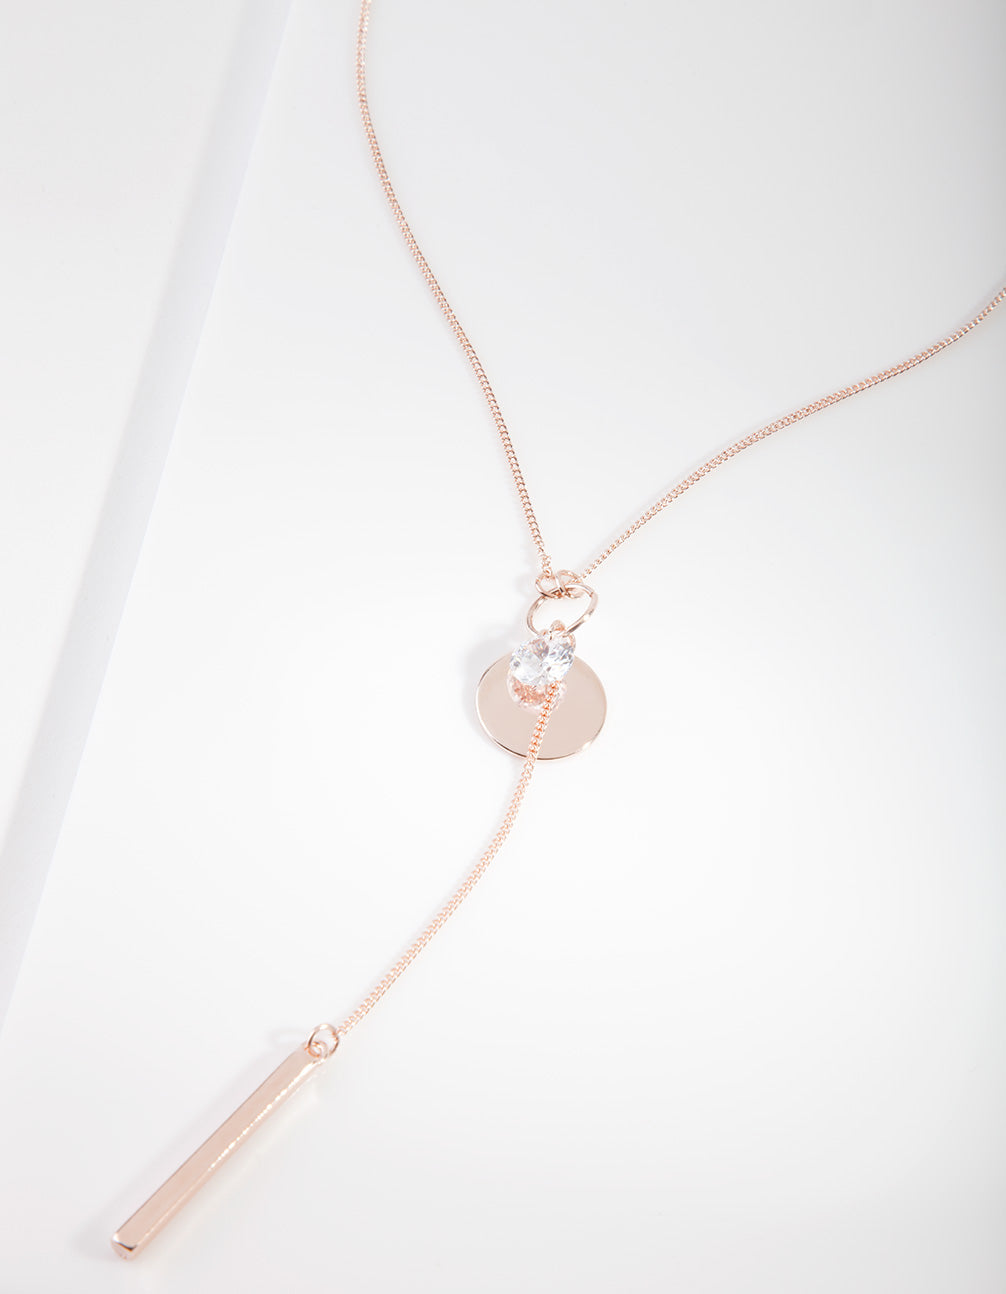 Rose Gold Cubic Zirconia Charm Necklace